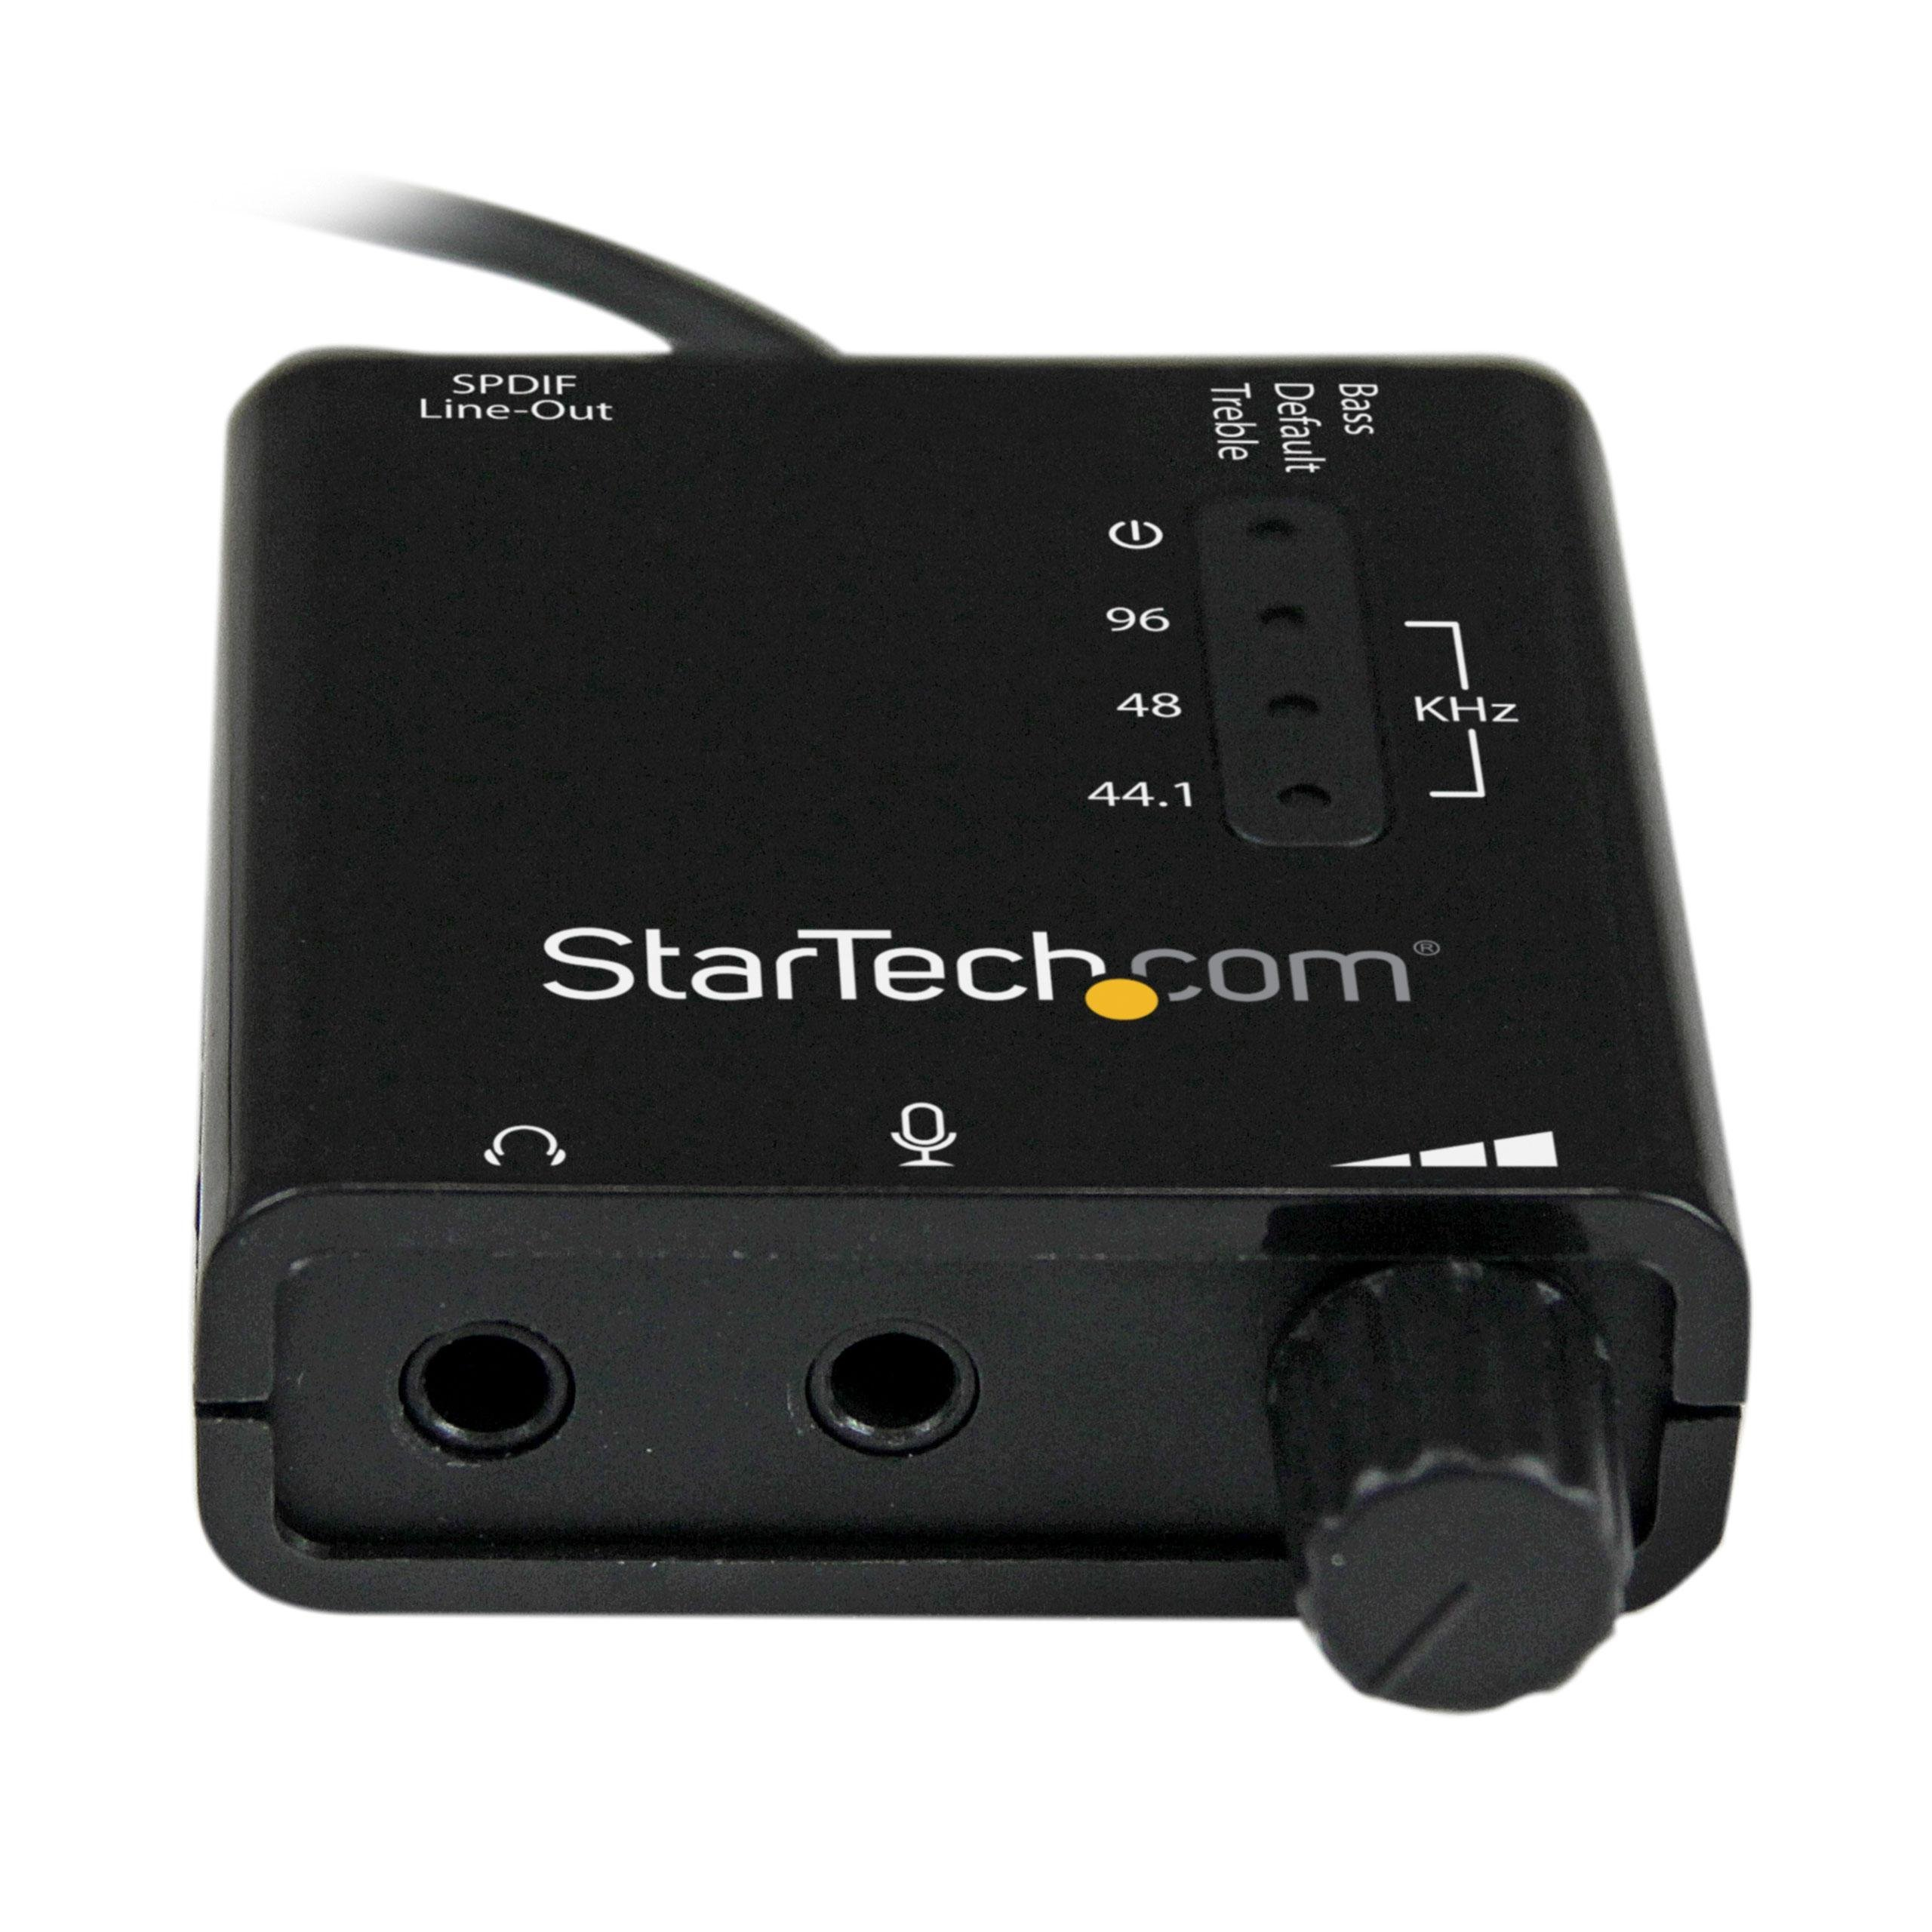 Amazon.com: StarTech.com ICUSBAUDIO2D USB Stereo Audio ... | 2560 x 2560 jpeg 457kB